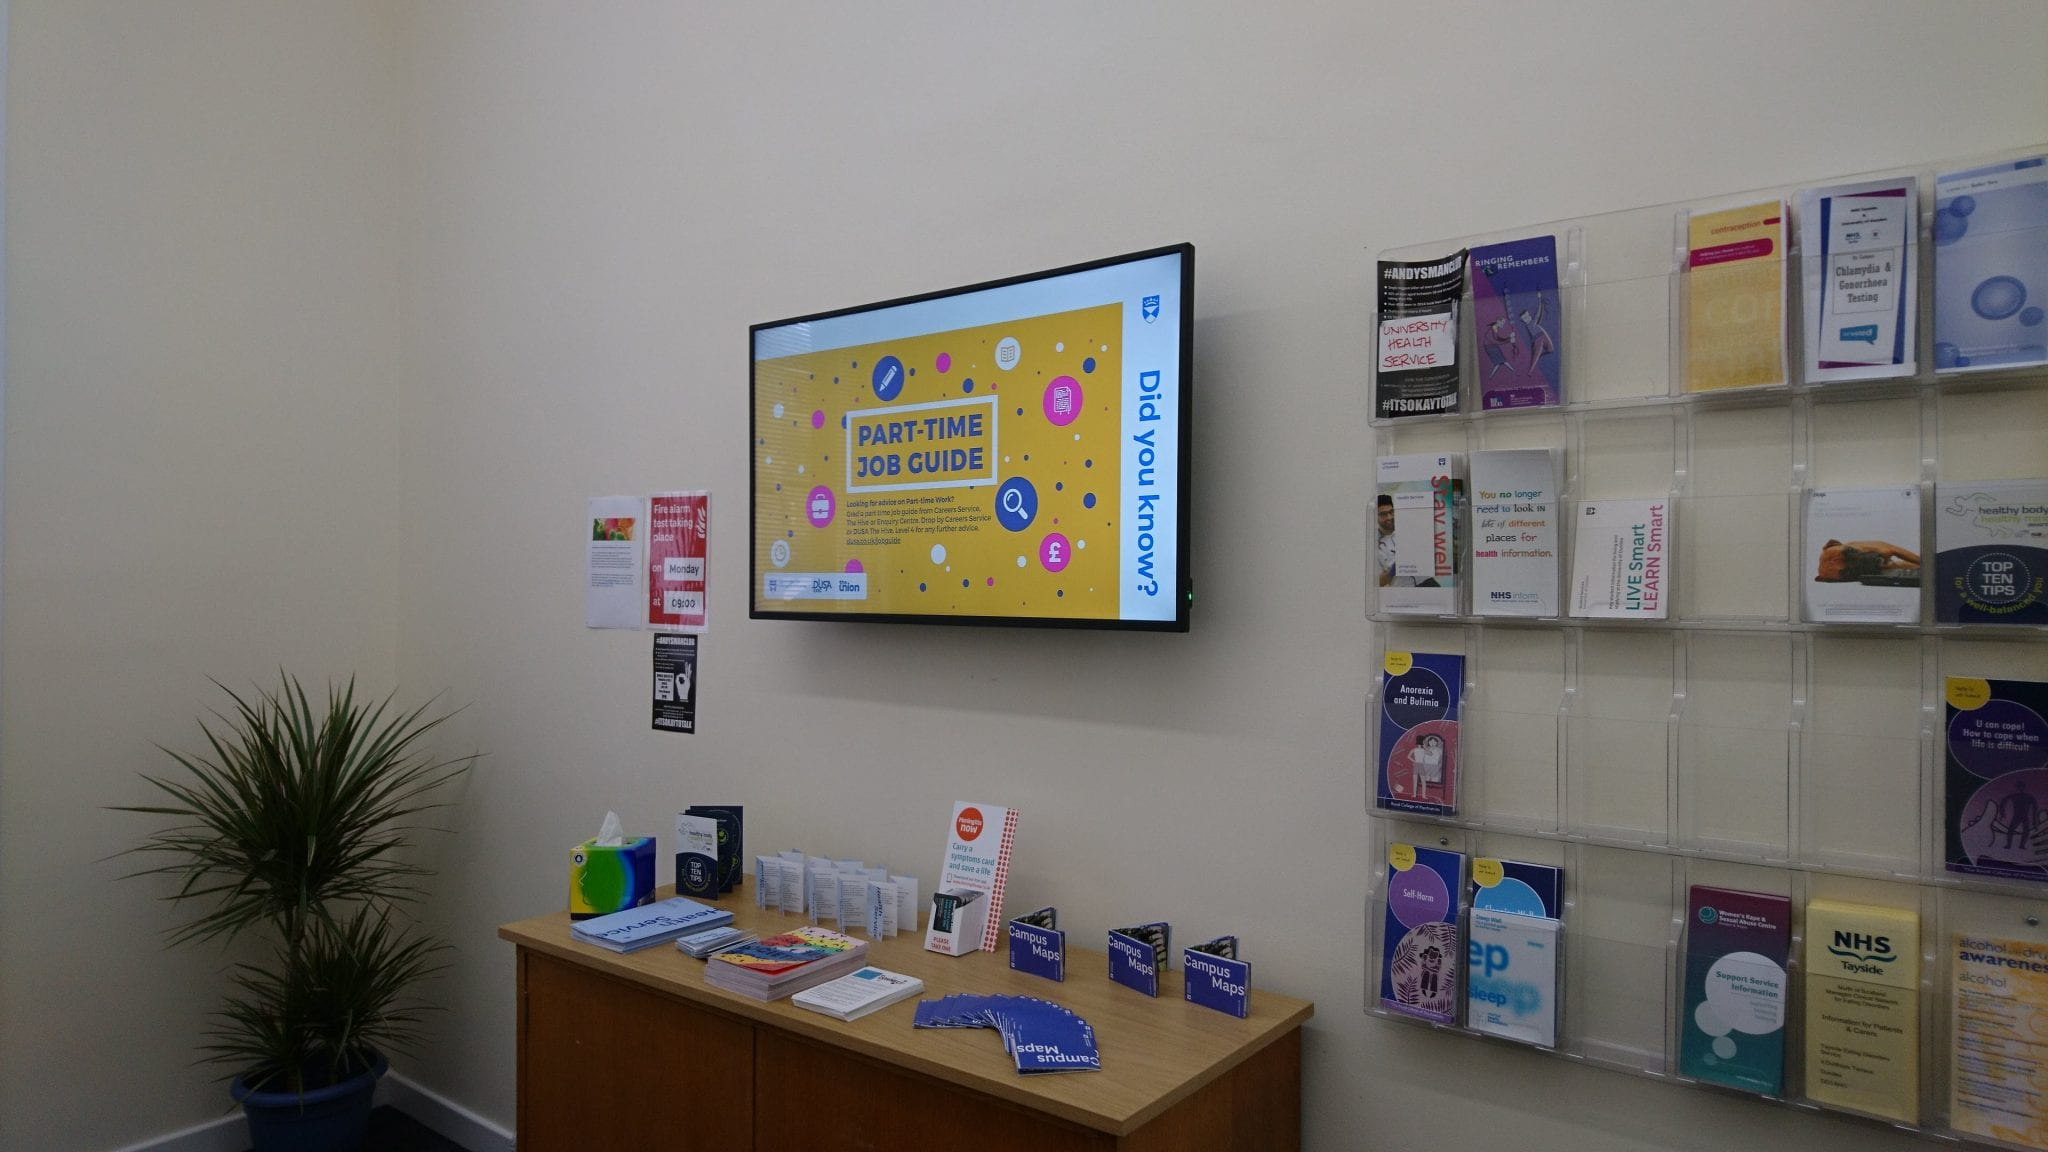 Digital signage in the Health Service waiting area